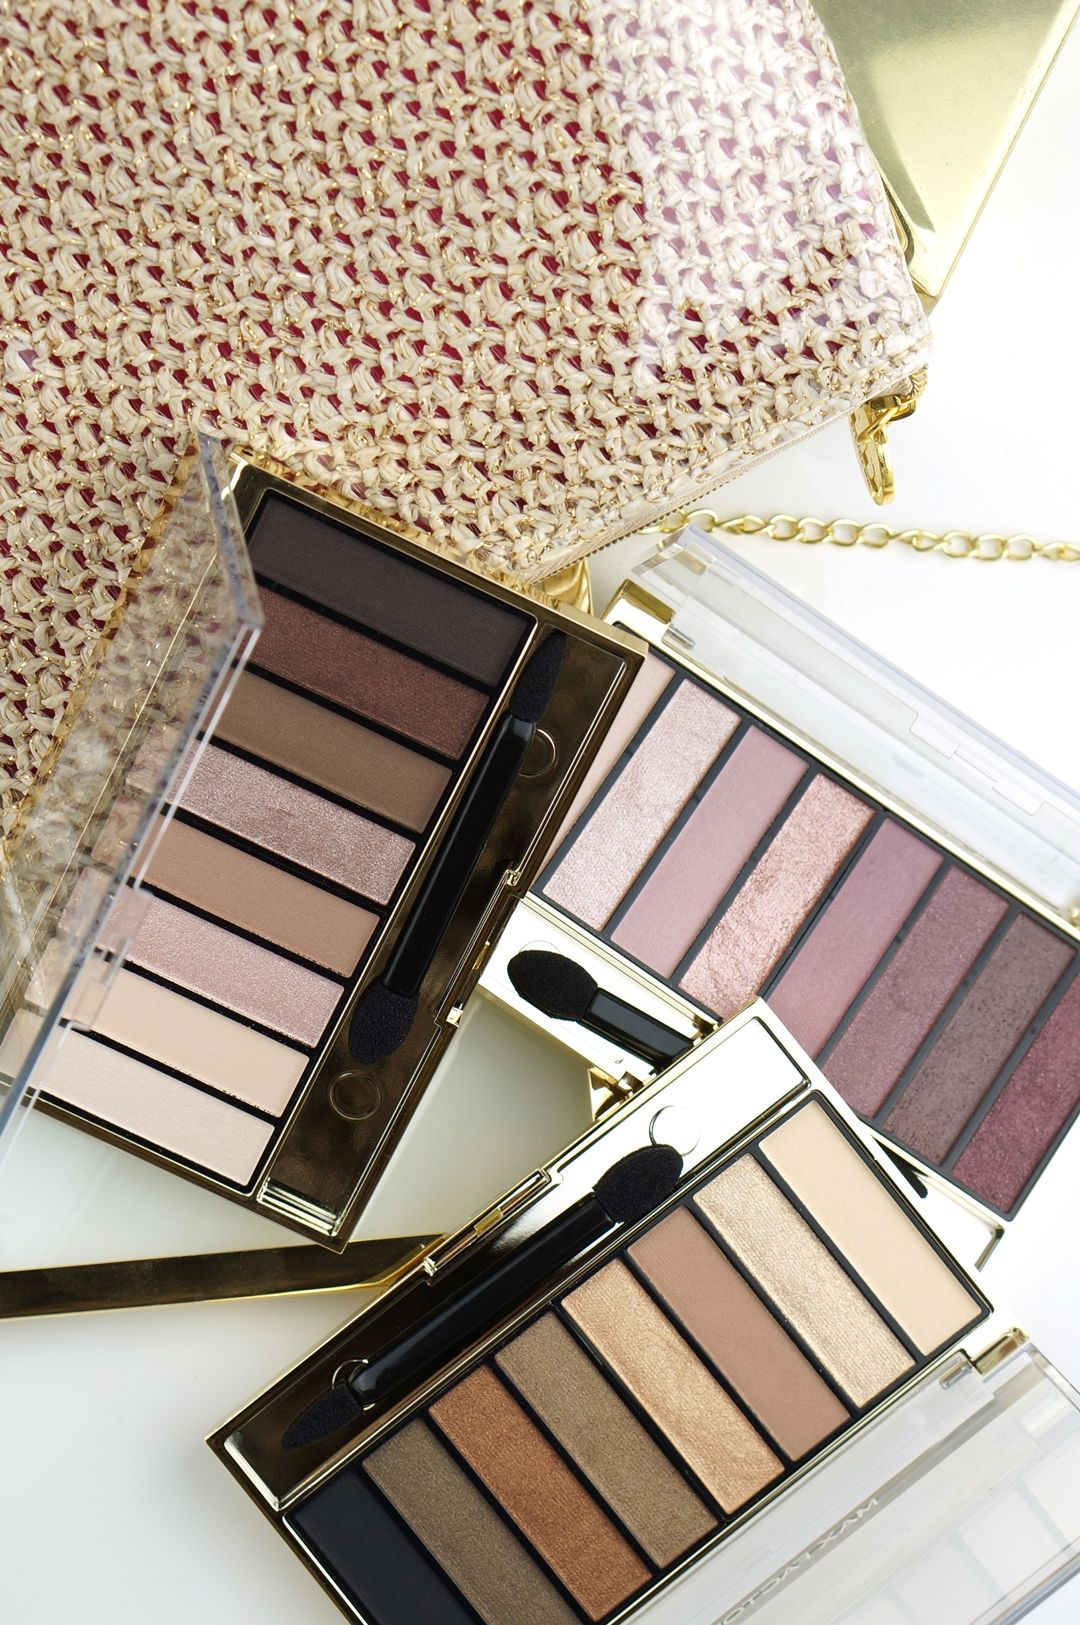 Idee Palette Nouveau Pin Auf Eyeshadow Palettes Of 21 Charmant Idee Palette